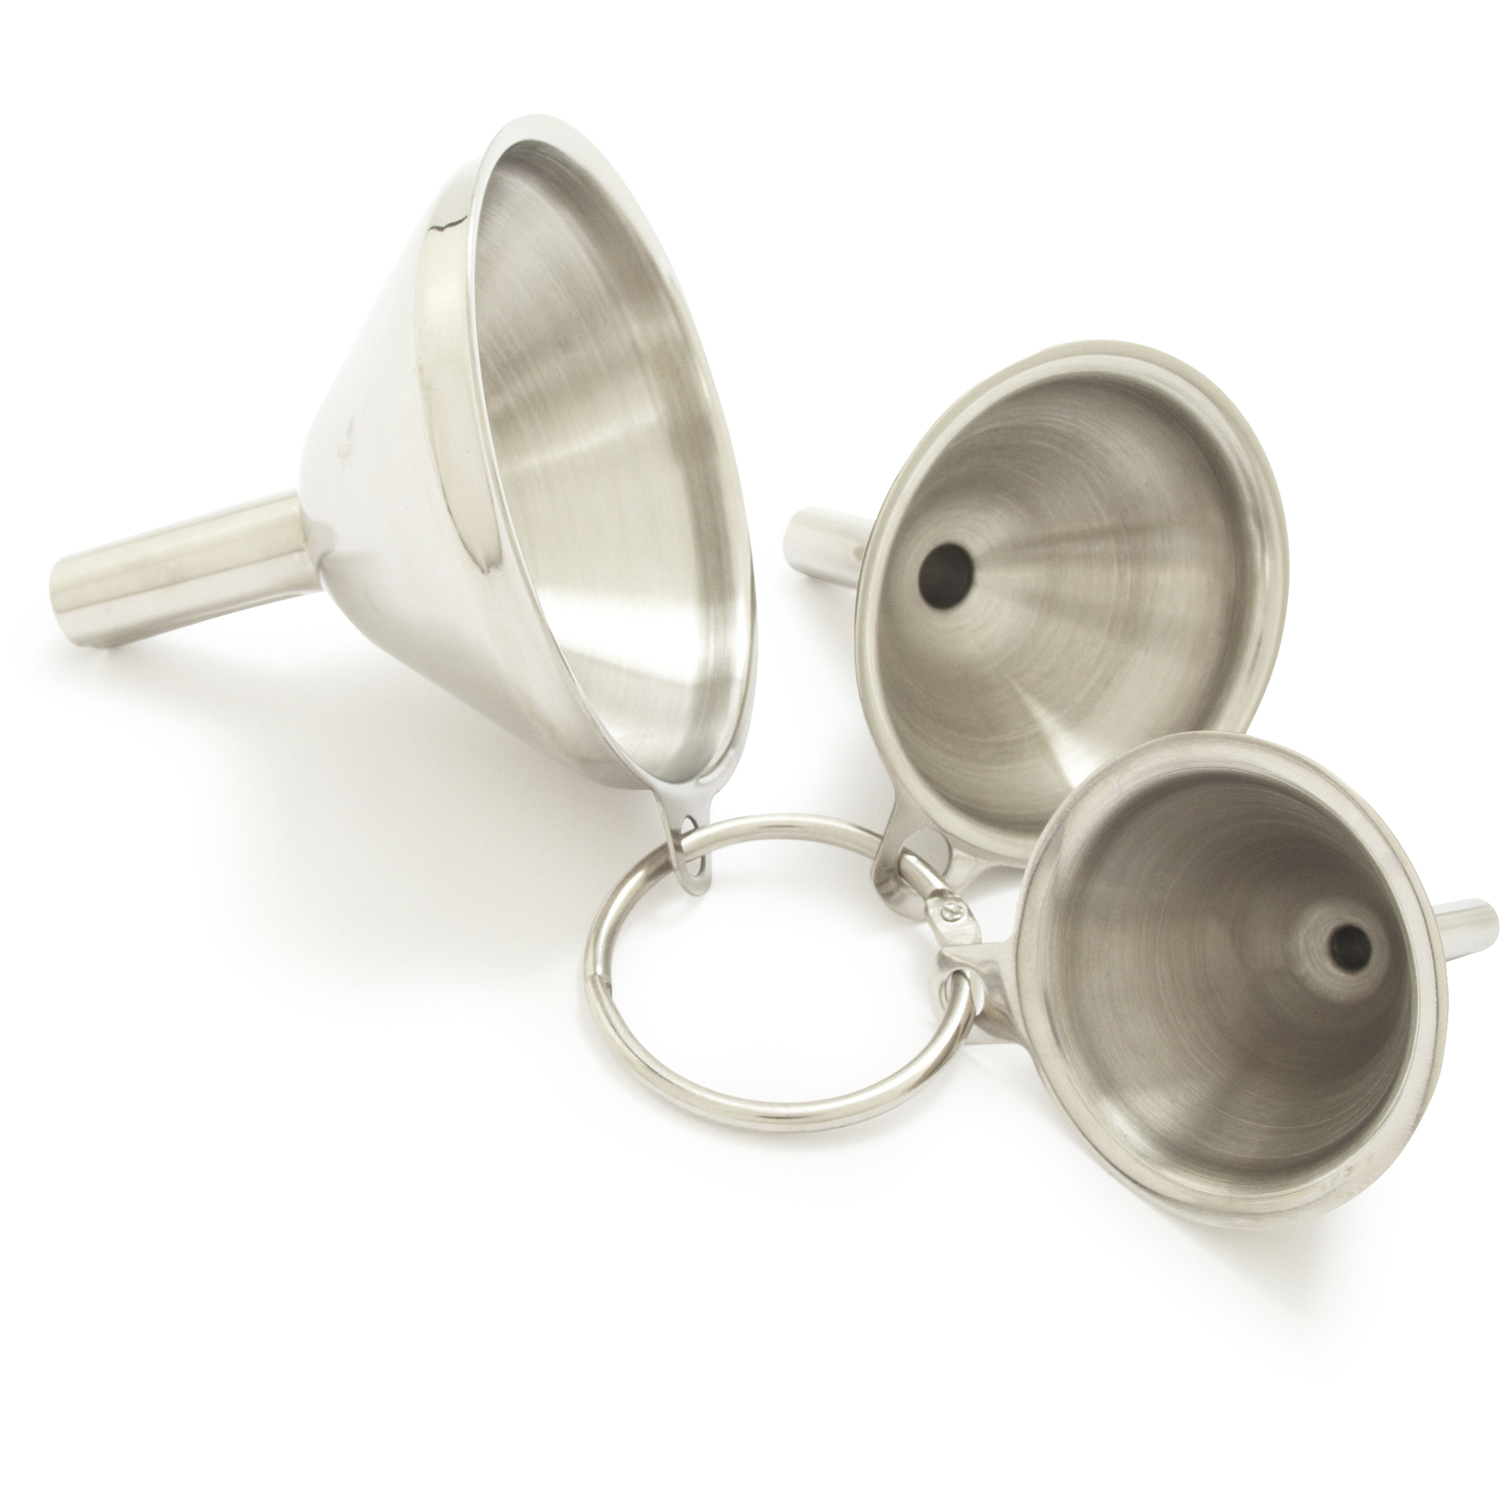 3 In 1 Portable Stainless Steel Metal Funnel Set Kitchen Home Accessories V1Z3